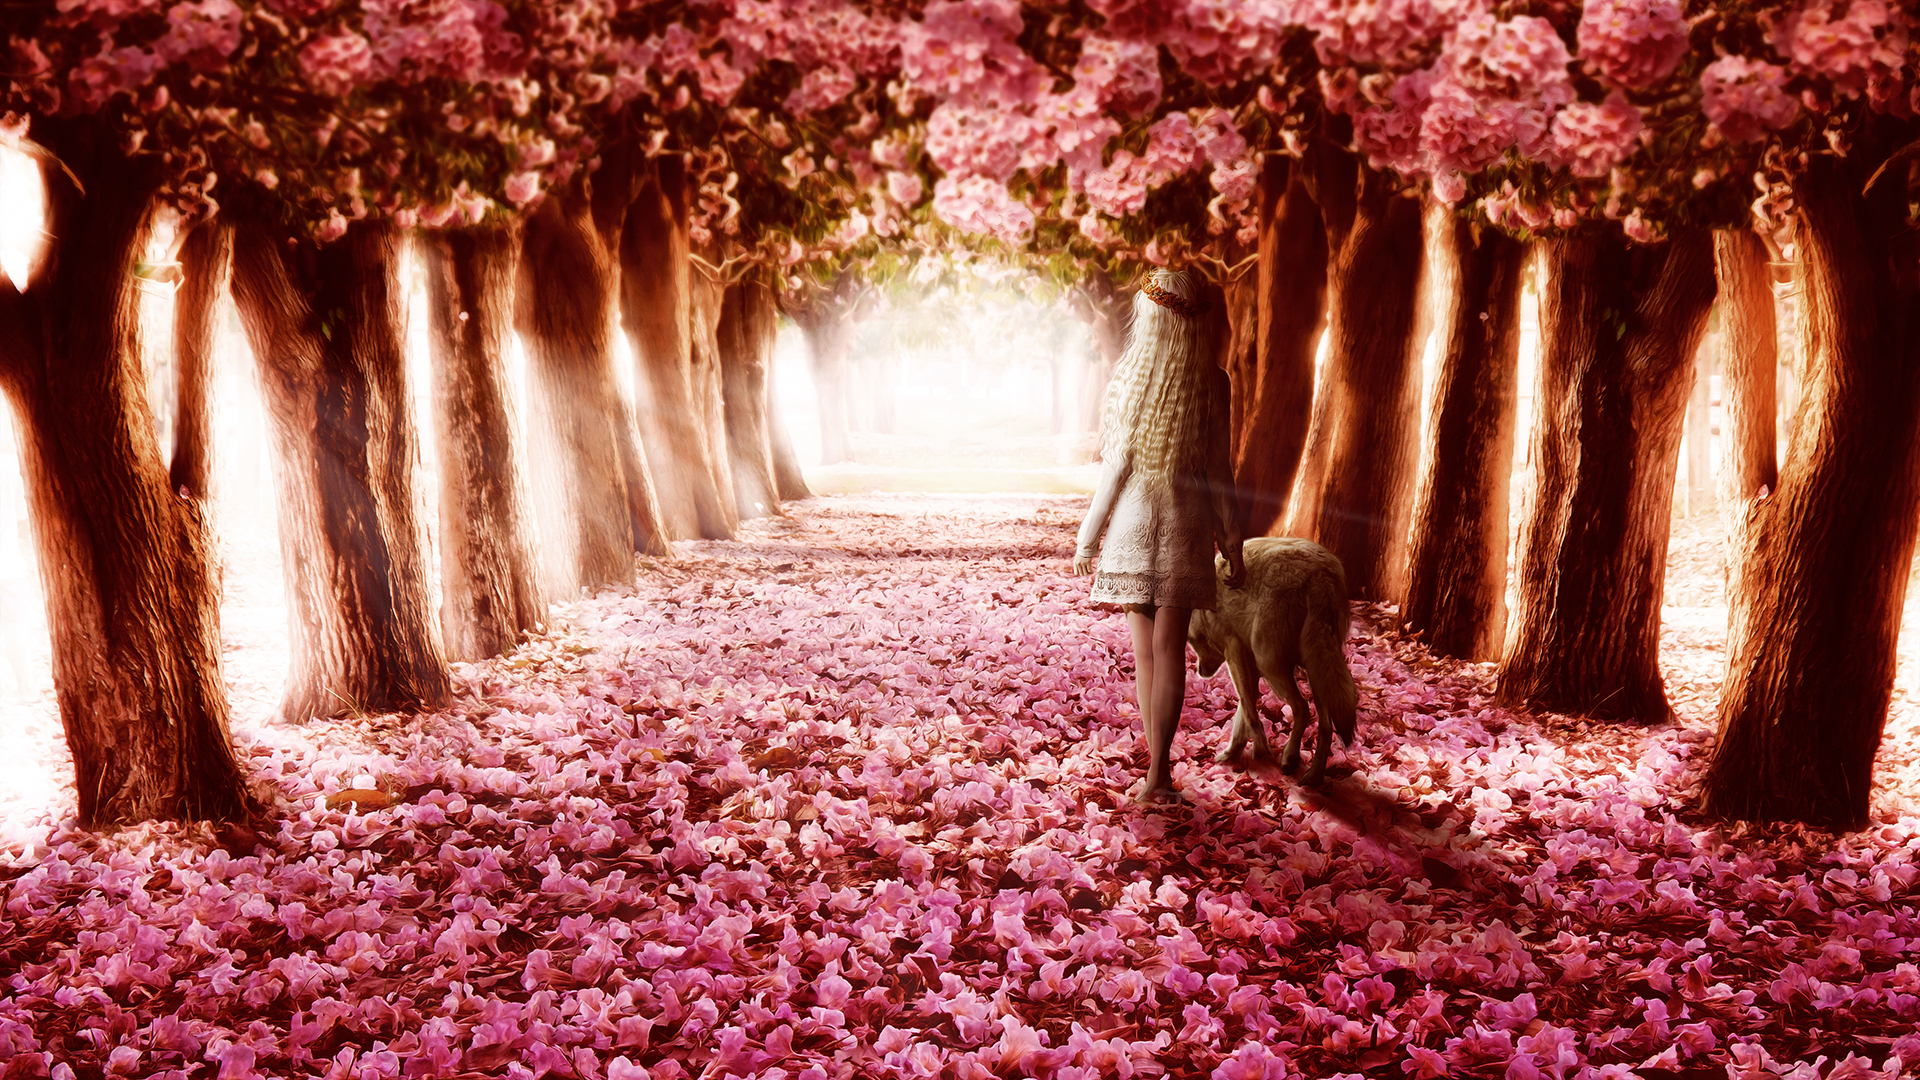 Flower Path 3010.64 Kb